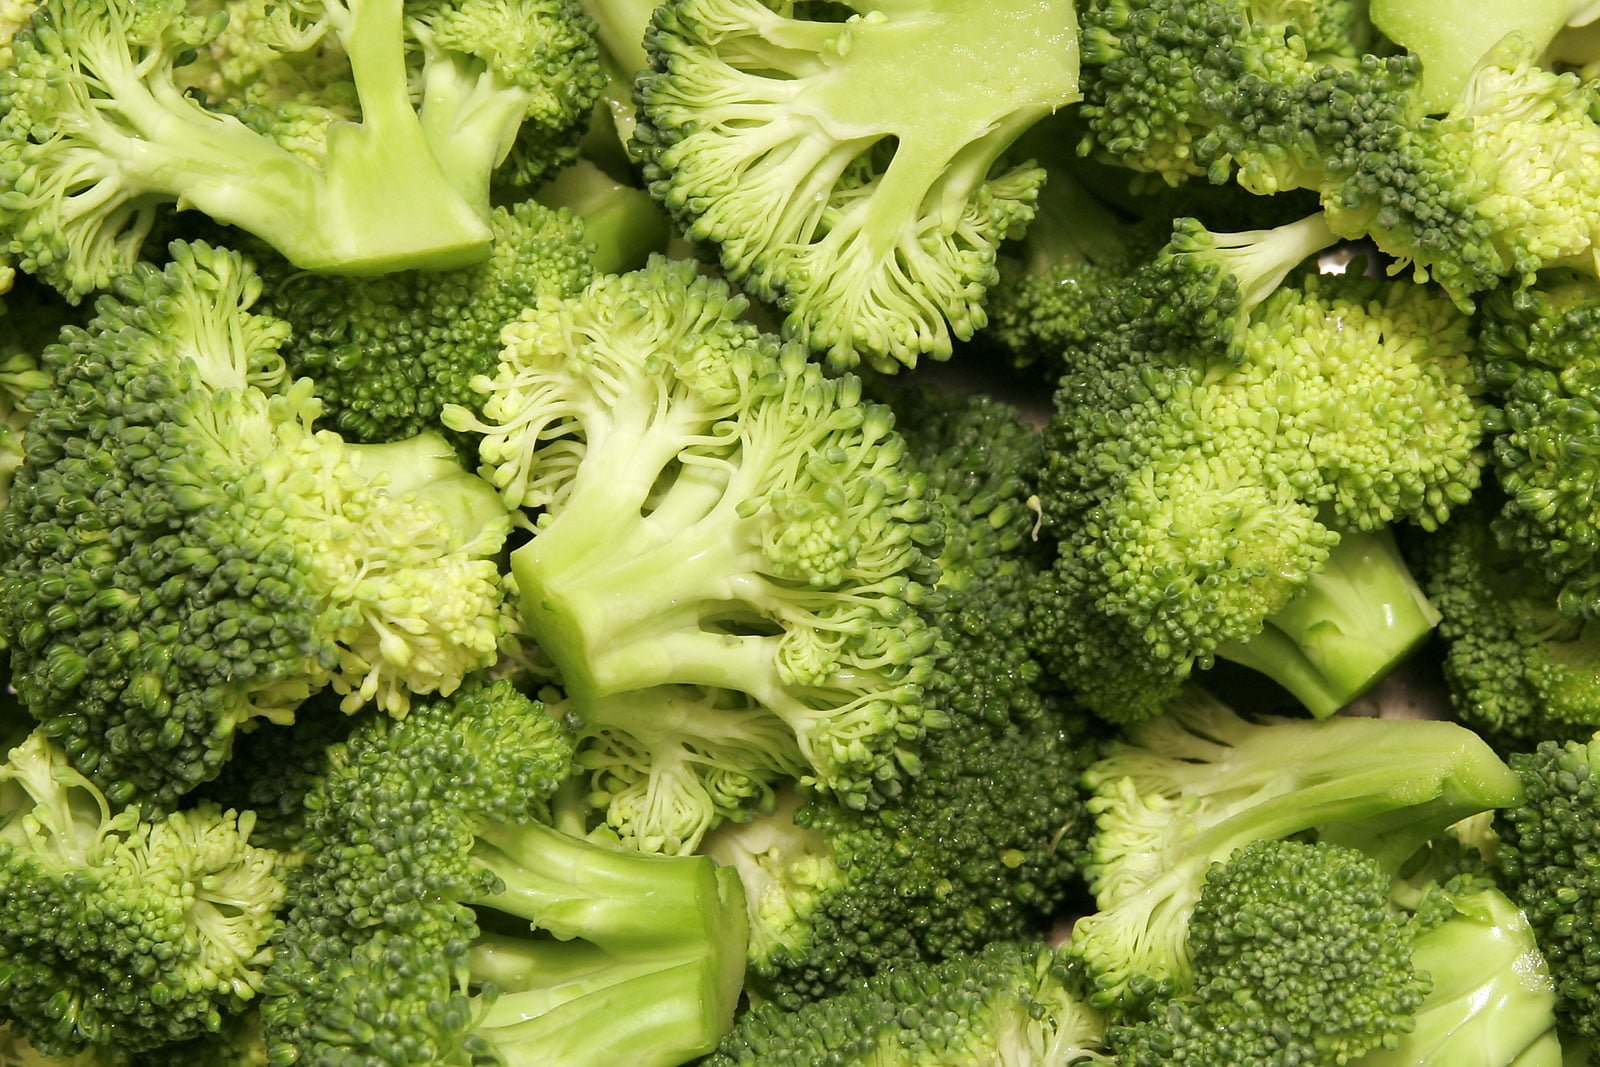 Broccoli, Behcet's disease home remedy